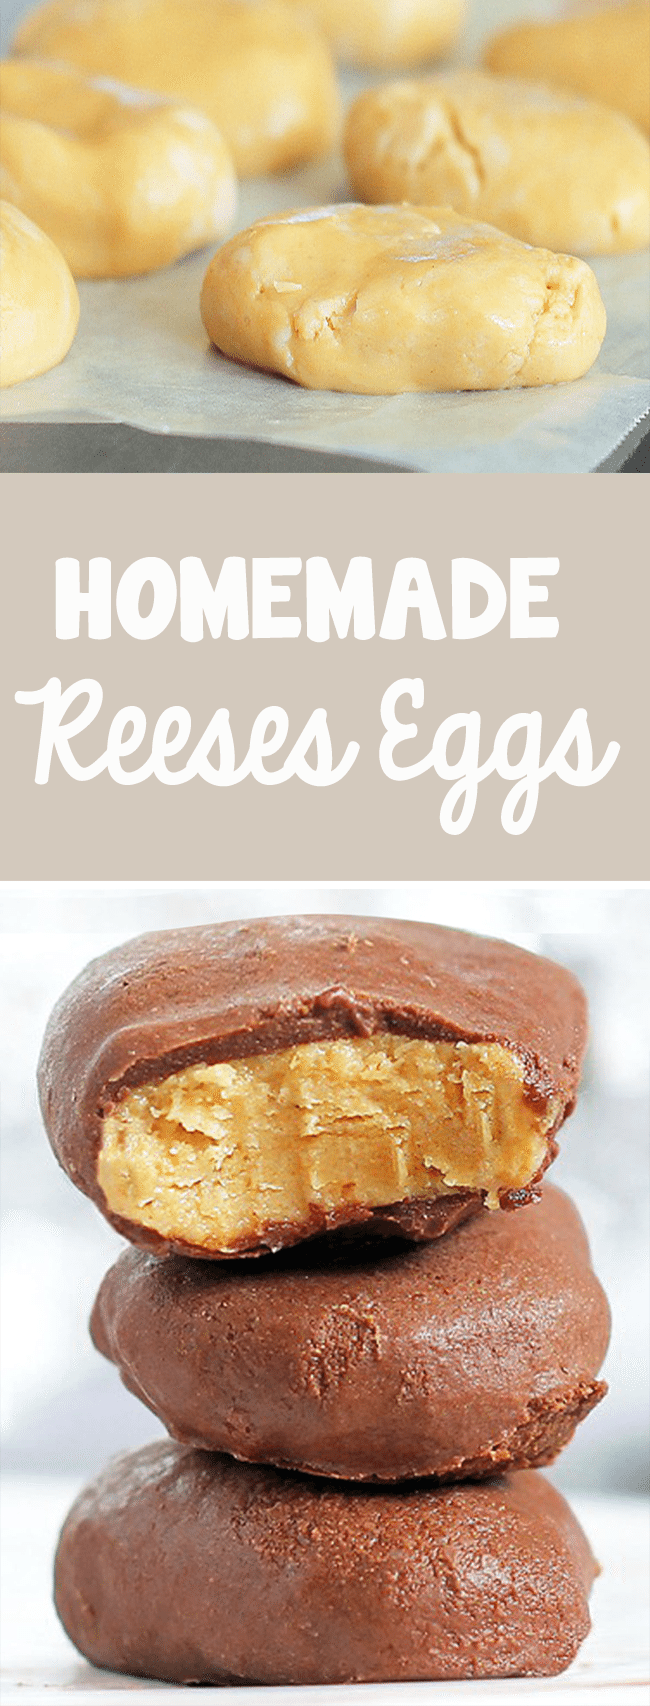 Just mix the ingredients, form shapes, and dip in chocolate. 5 minutes and you're done! @choccoveredkt... Full recipe: https://chocolatecoveredkatie.com/2012/03/29/copycat-recipe-reeses-peanut-butter-eggs/